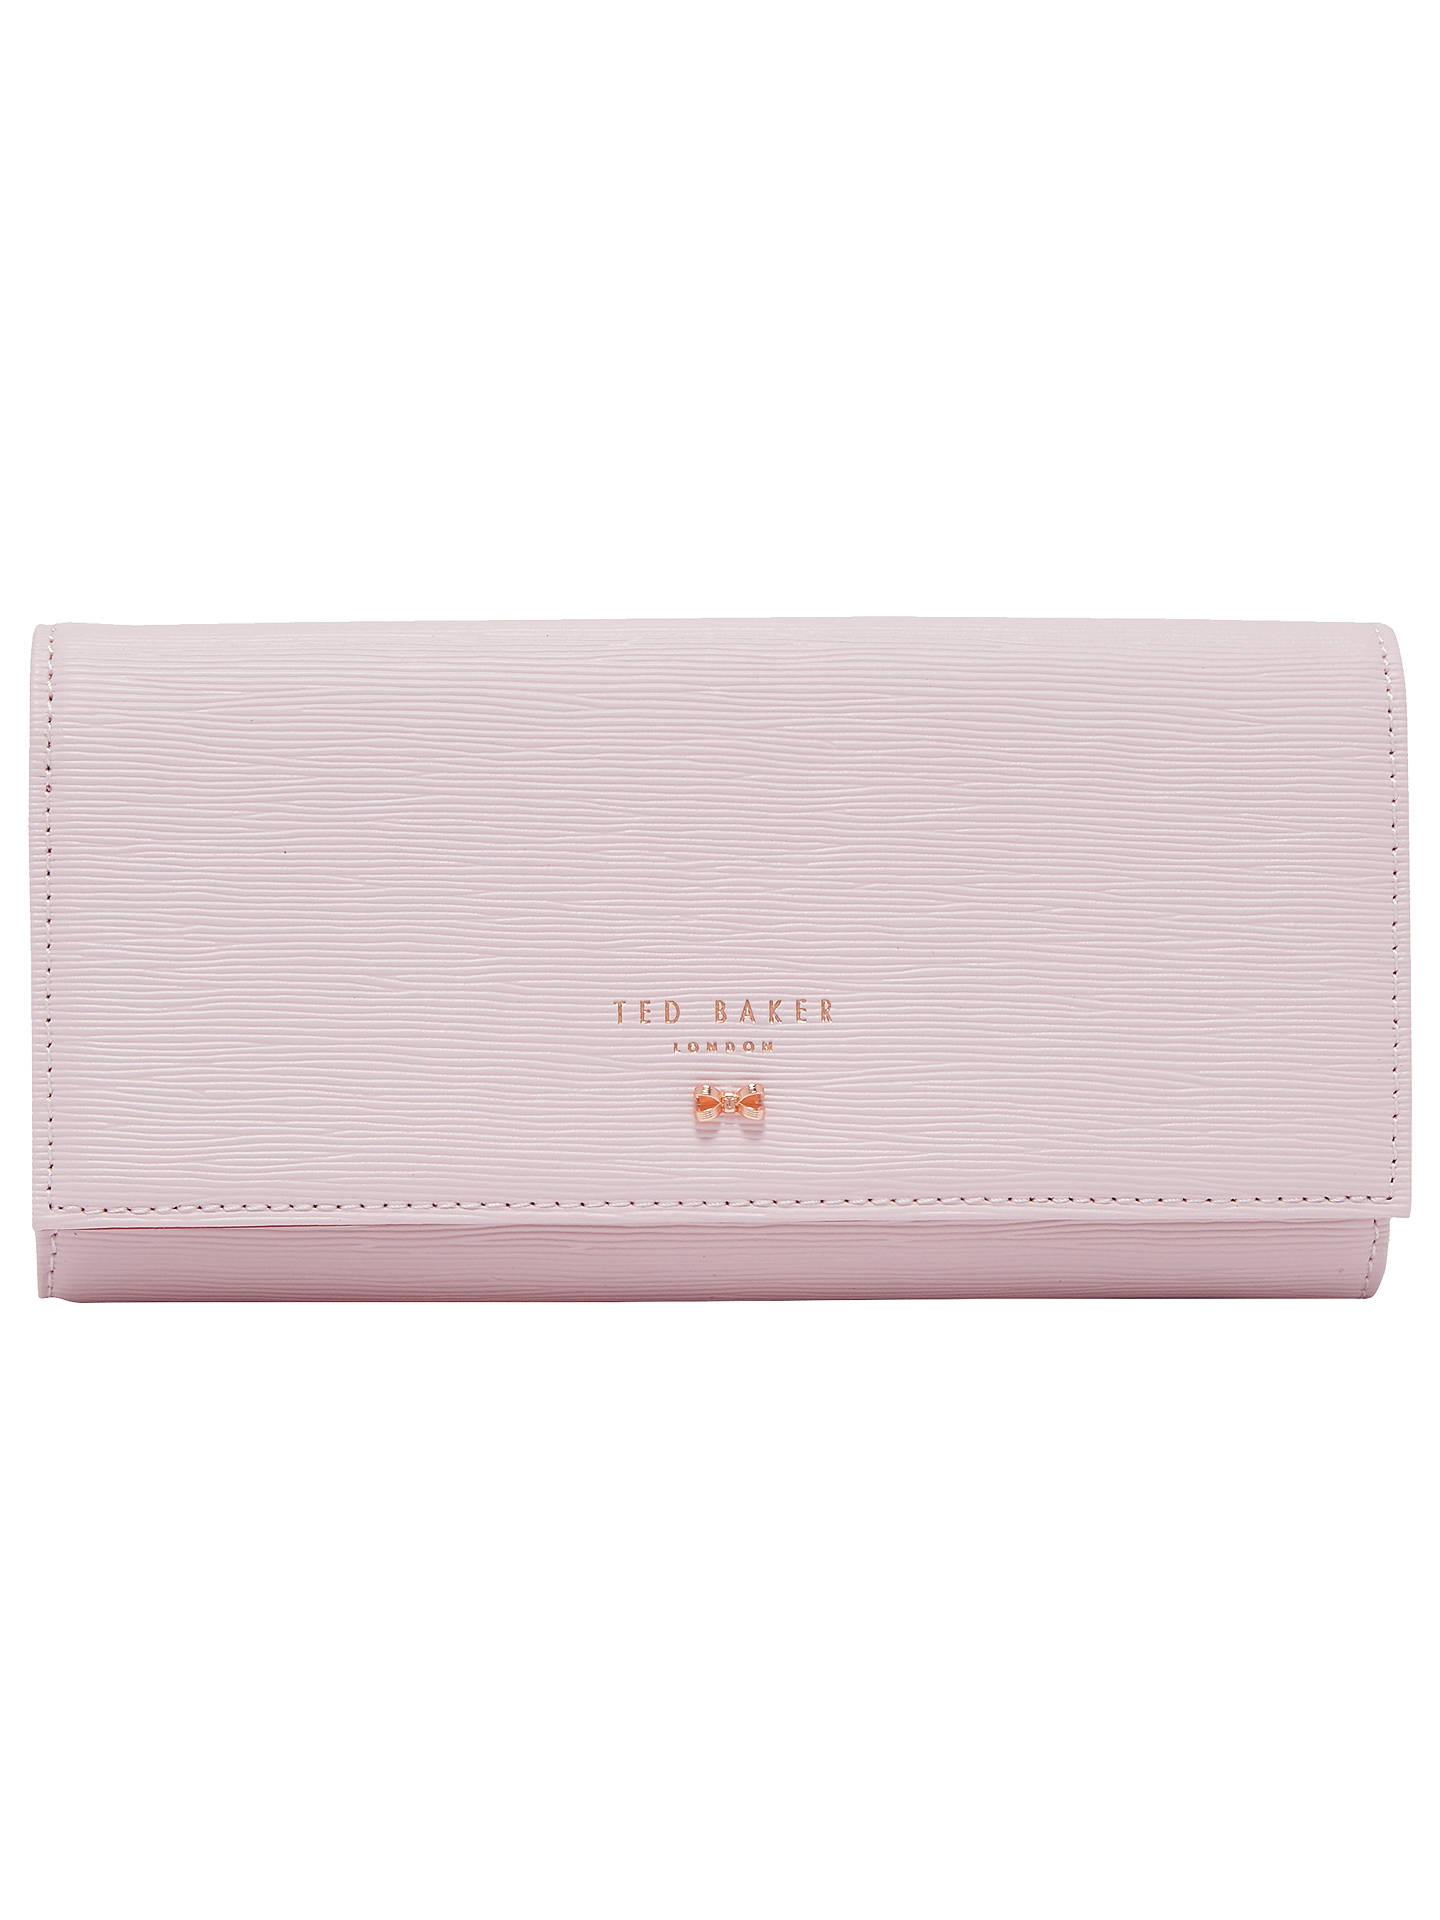 828779a109d1a2 Ted Baker Pansie Bow Leather Matinee Purse at John Lewis   Partners